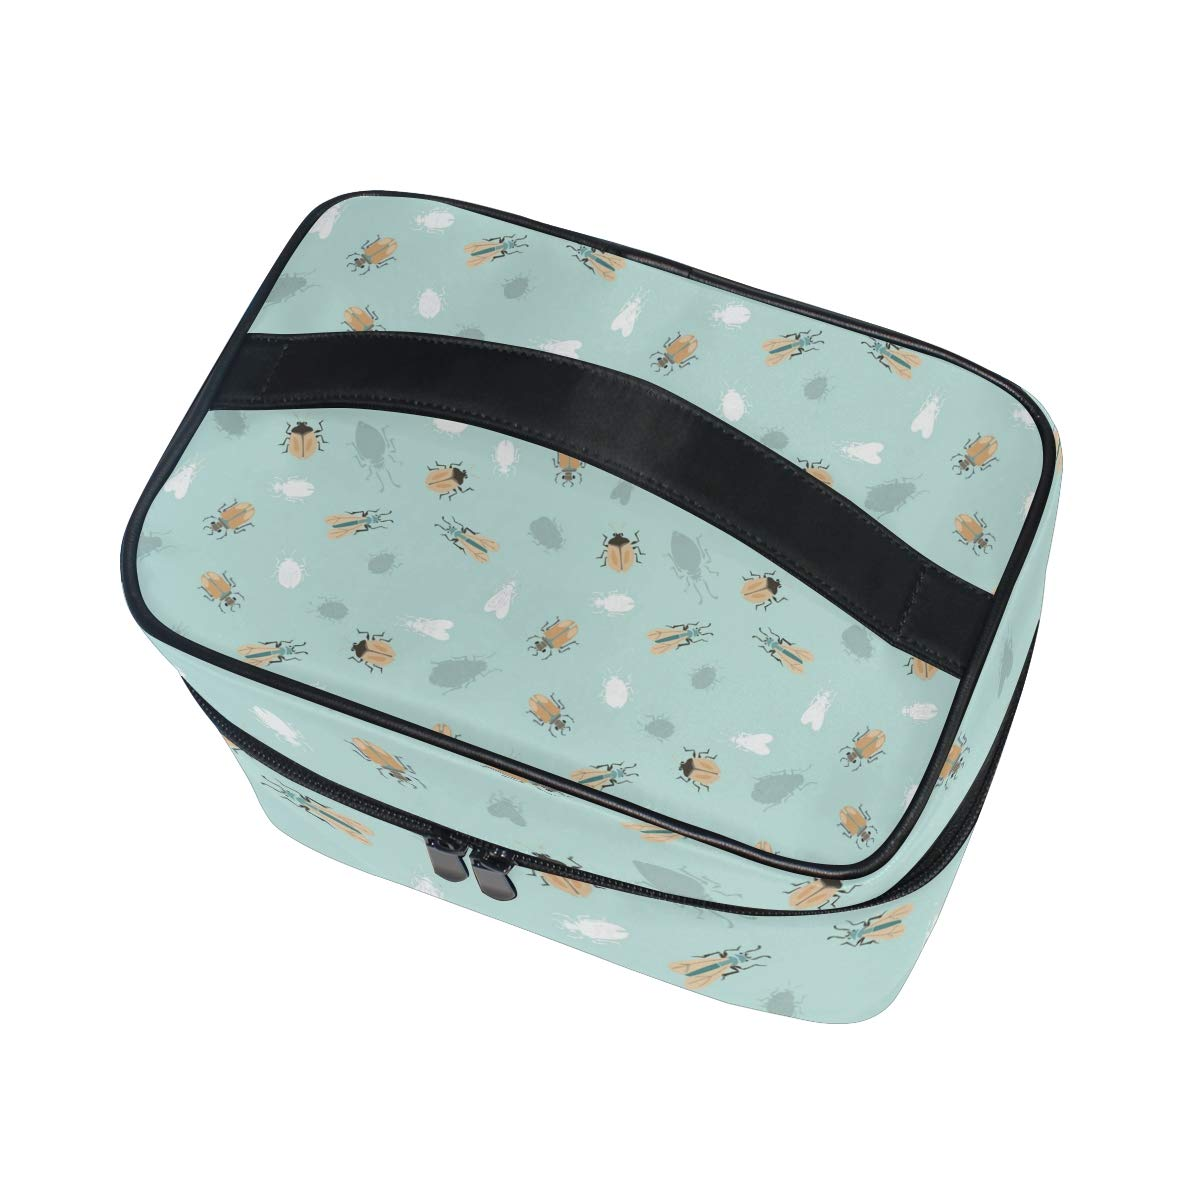 d7c622af0bcd Amazon.com : Dragon Sword Ladybug Party Cosmetic Toilet Bag for ...